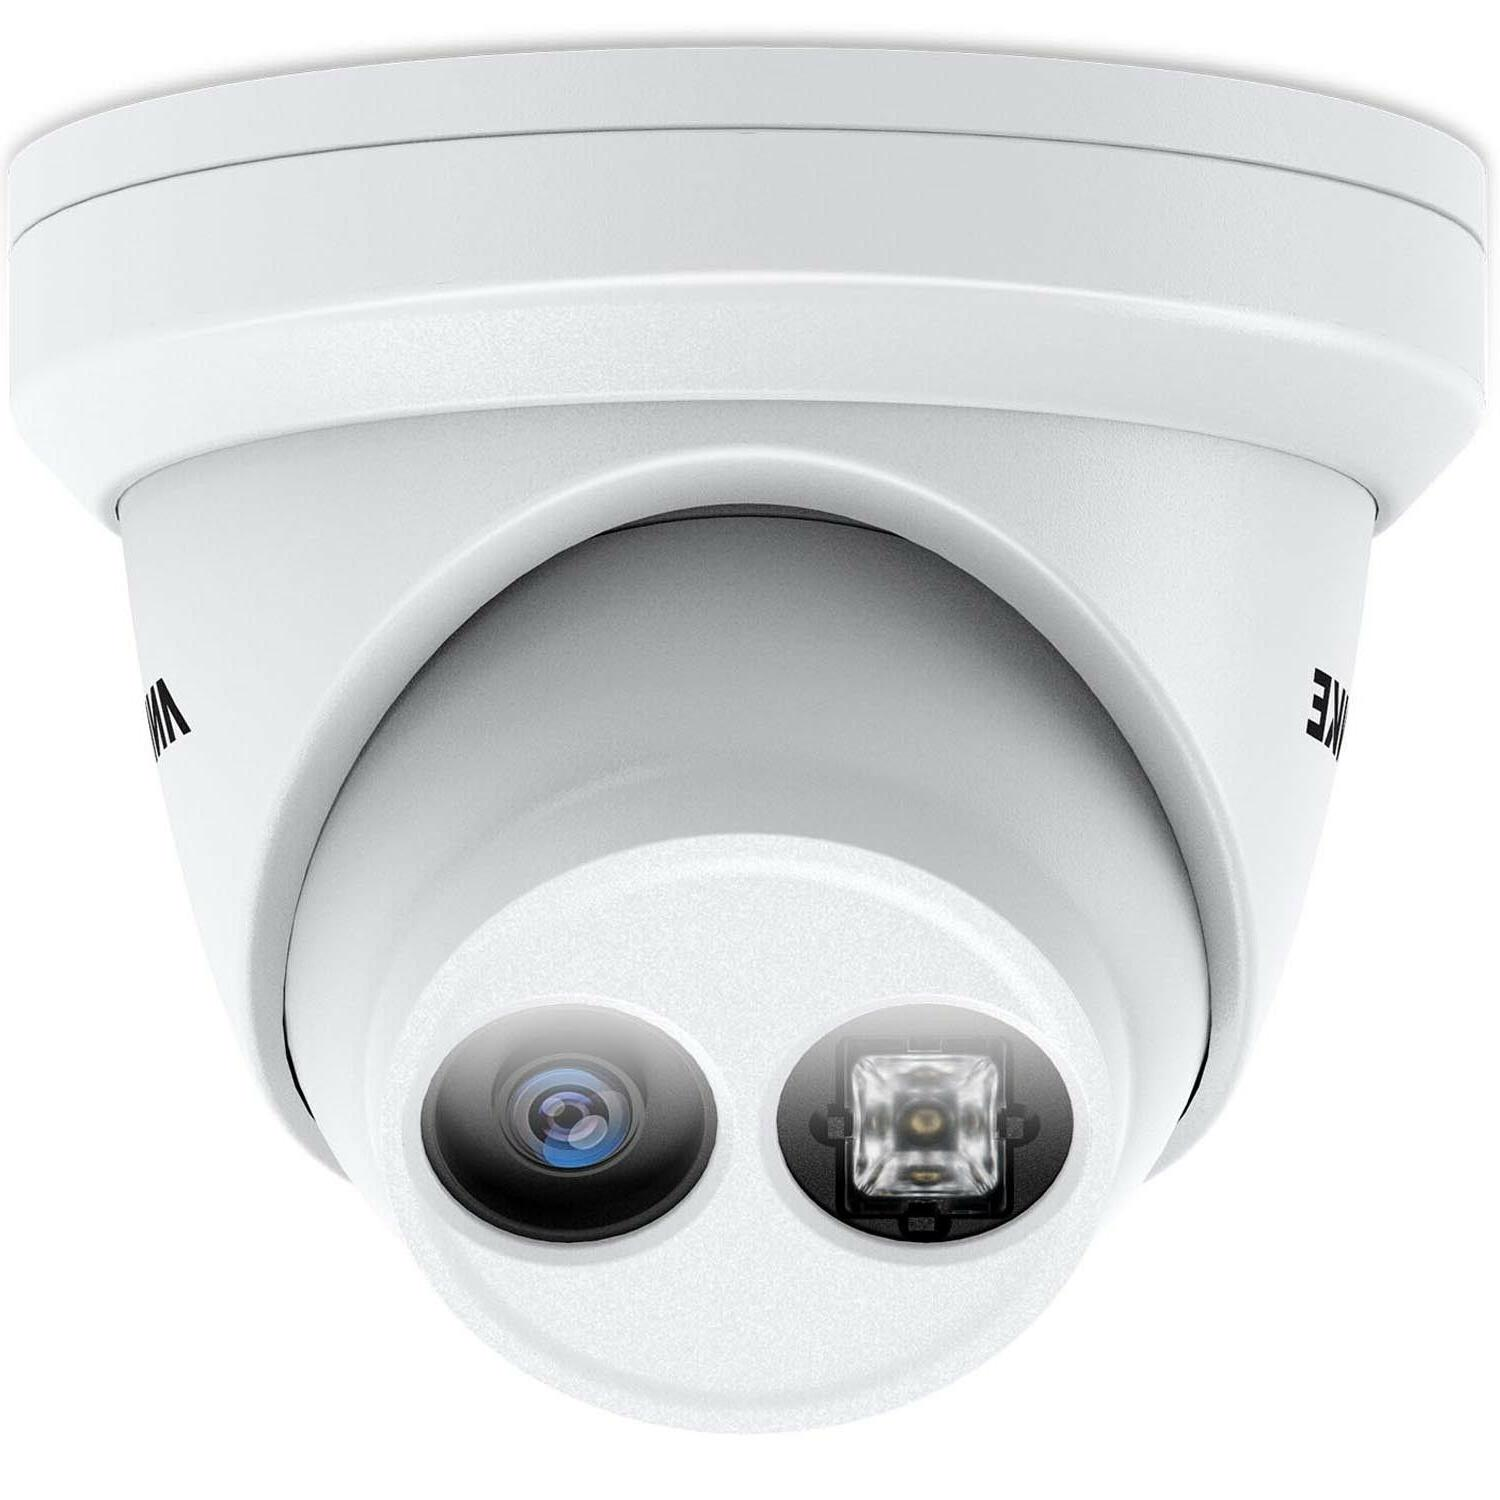 ANNKE POE Outdoor Security IP Camera Night Vision US